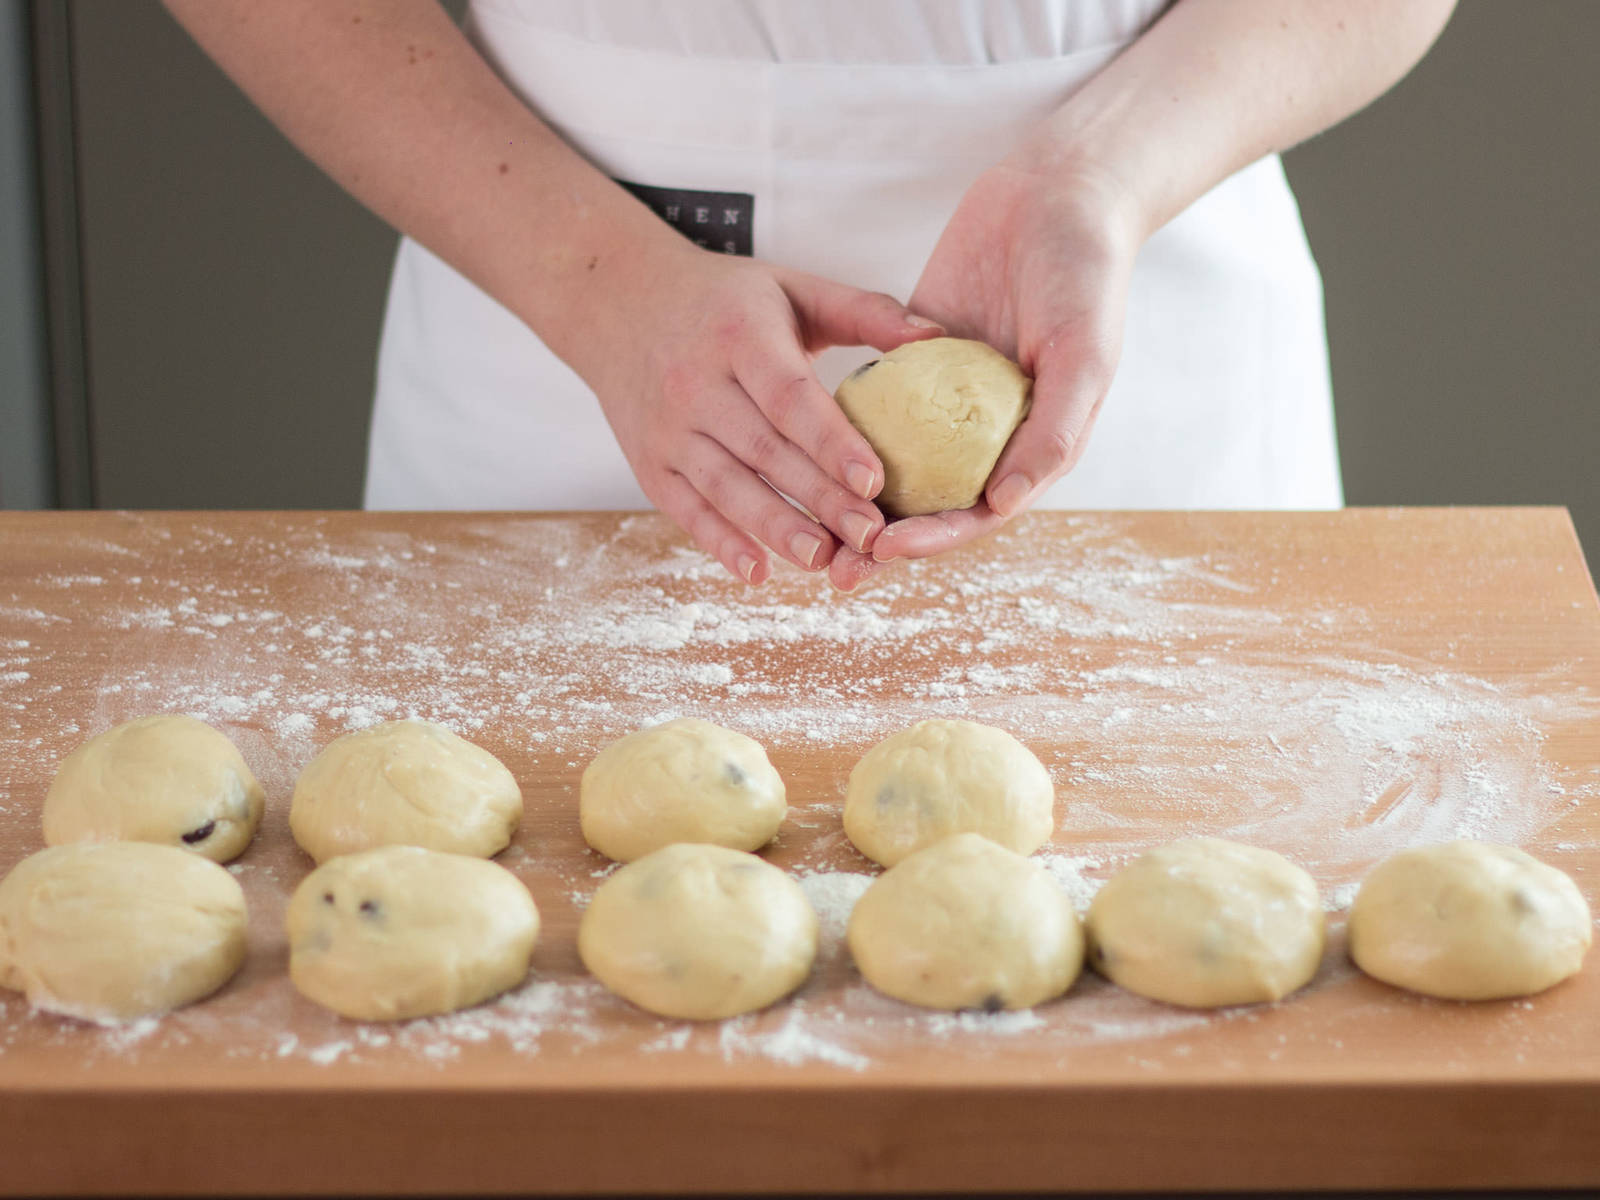 Turn out dough onto a floured work surface and form into individual rounds, approx. the size of dinner rolls. Transfer to a lined baking sheet and let rest for approx. another 30 min.